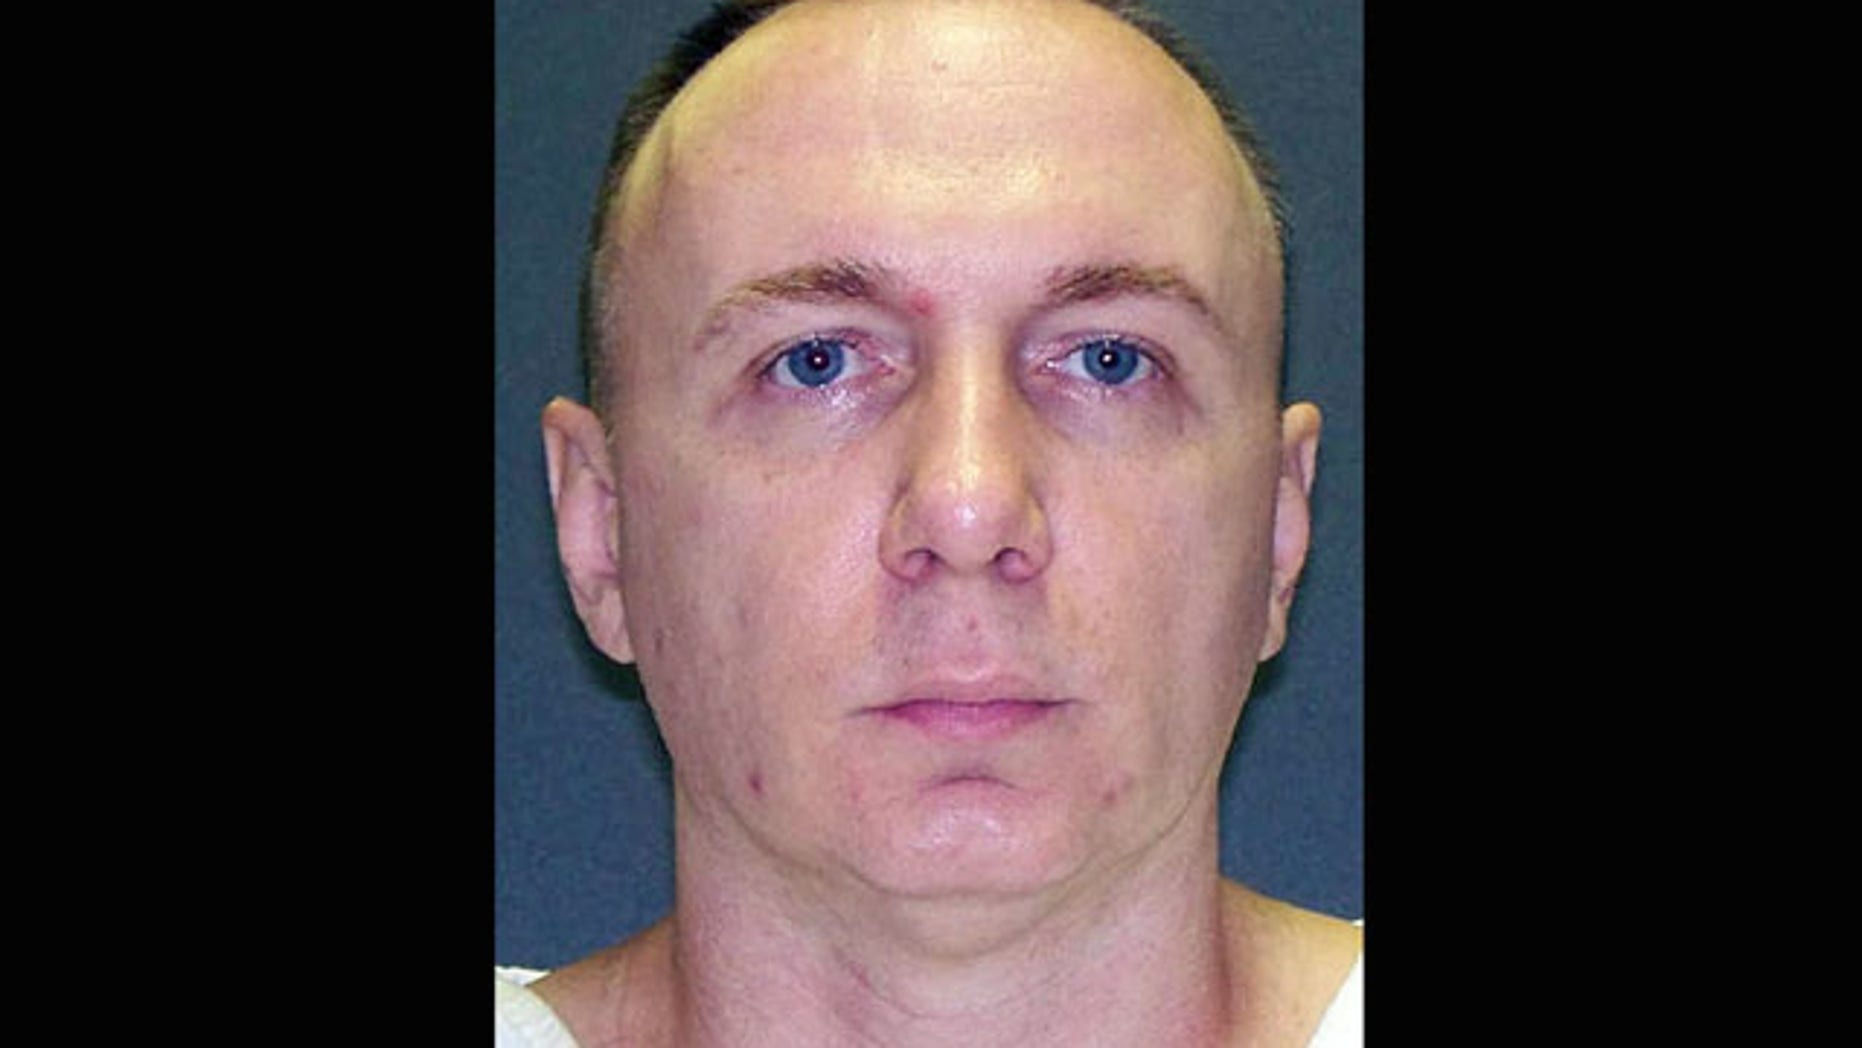 Oct. 31, 2012: This handout photo provided by the Texas Department of Public Safety shows Donnie Roberts. Roberts, a Louisiana parole violator, is set to die for killing his girlfriend Vicki Bowen at her home in Lake Livingston, Texas, in October 2003.